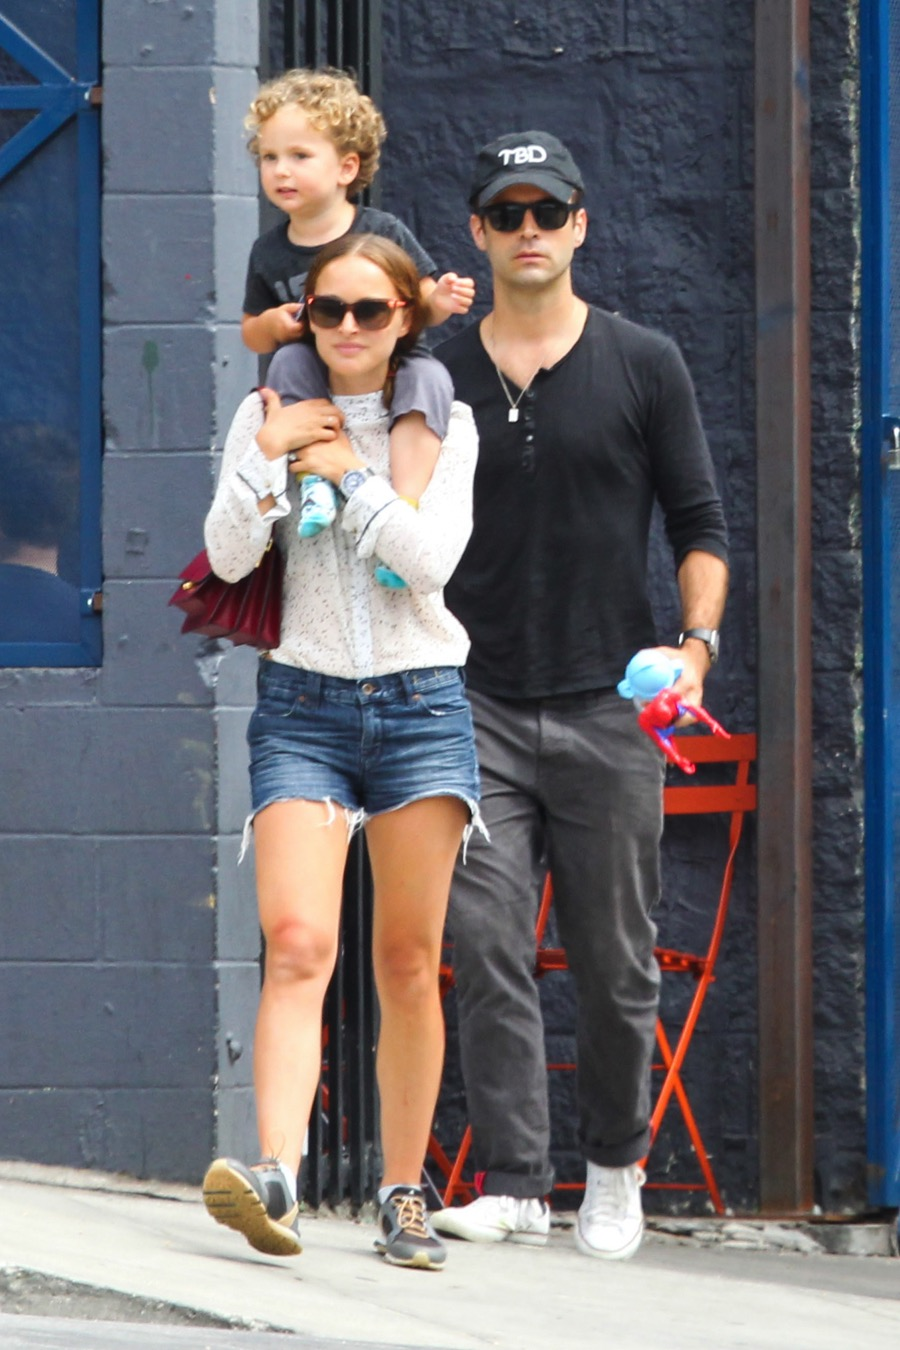 Natalie Portman And Benjamin Millepied Step Out With Their Son Aleph For A Family Lunch At A Local Restaurant In Silver Lake Growing Your Baby